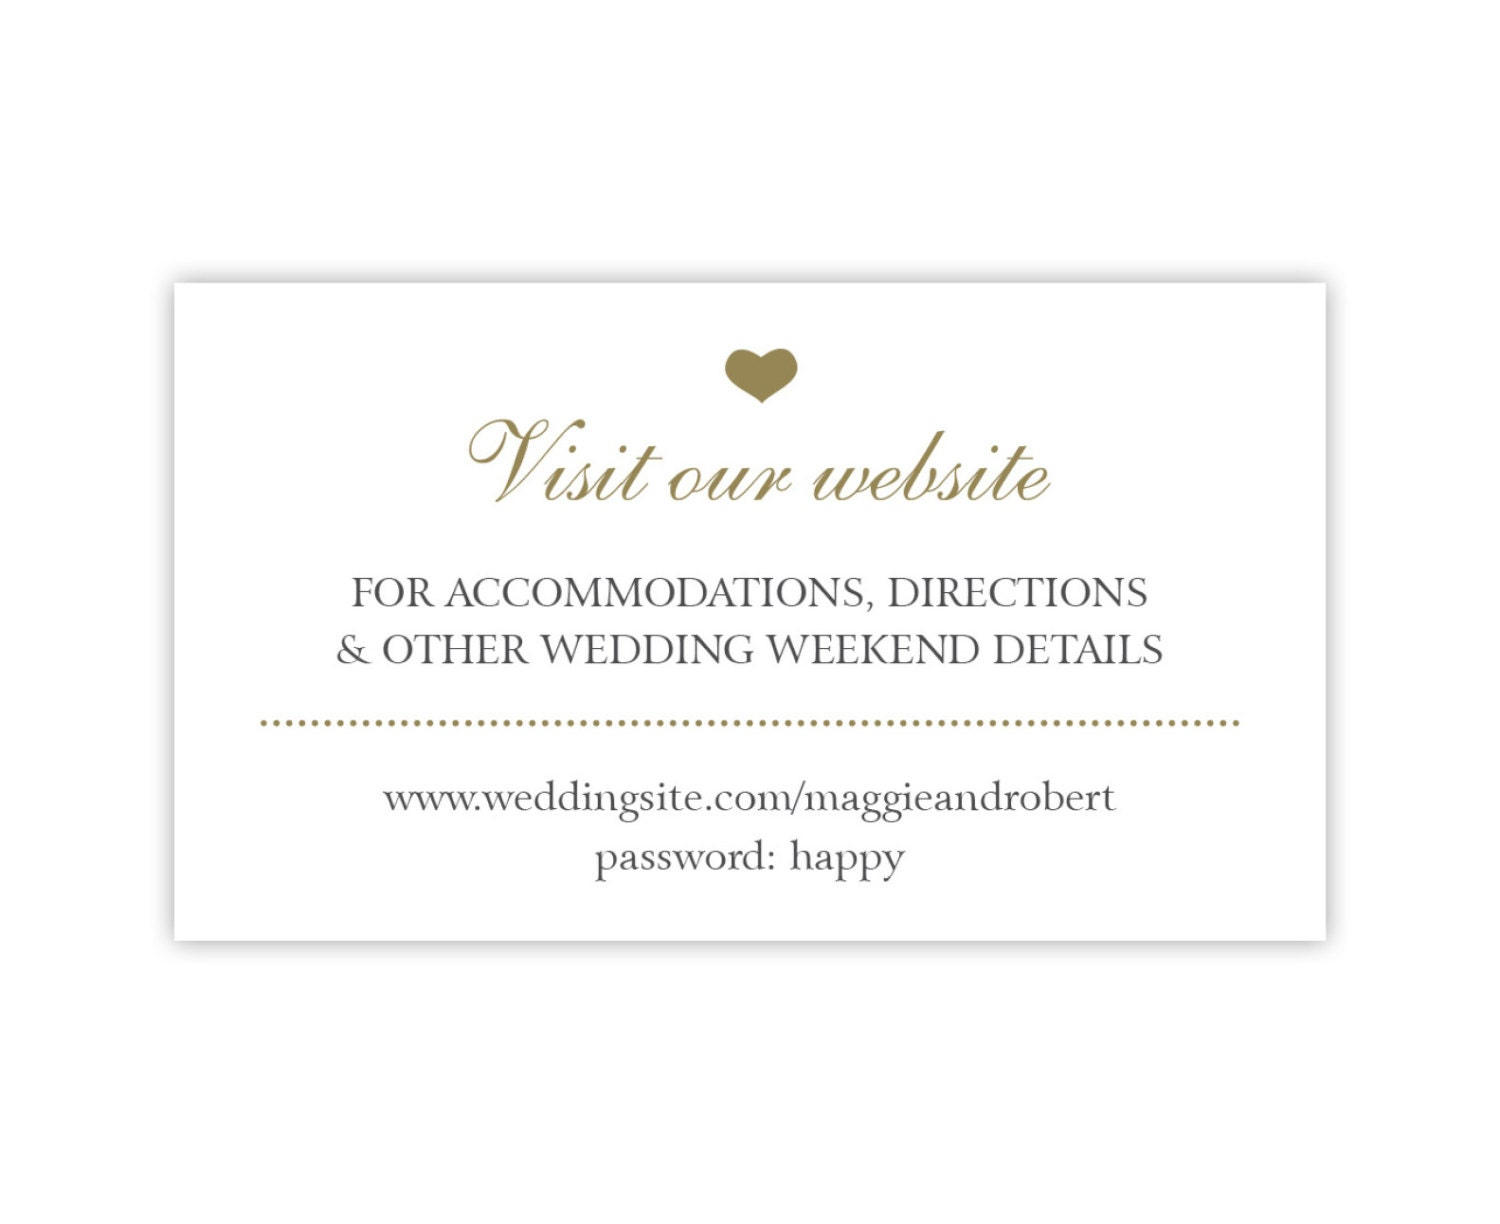 Wedding Website Insert Card Template Free Images Wedding - Gift registry card template free